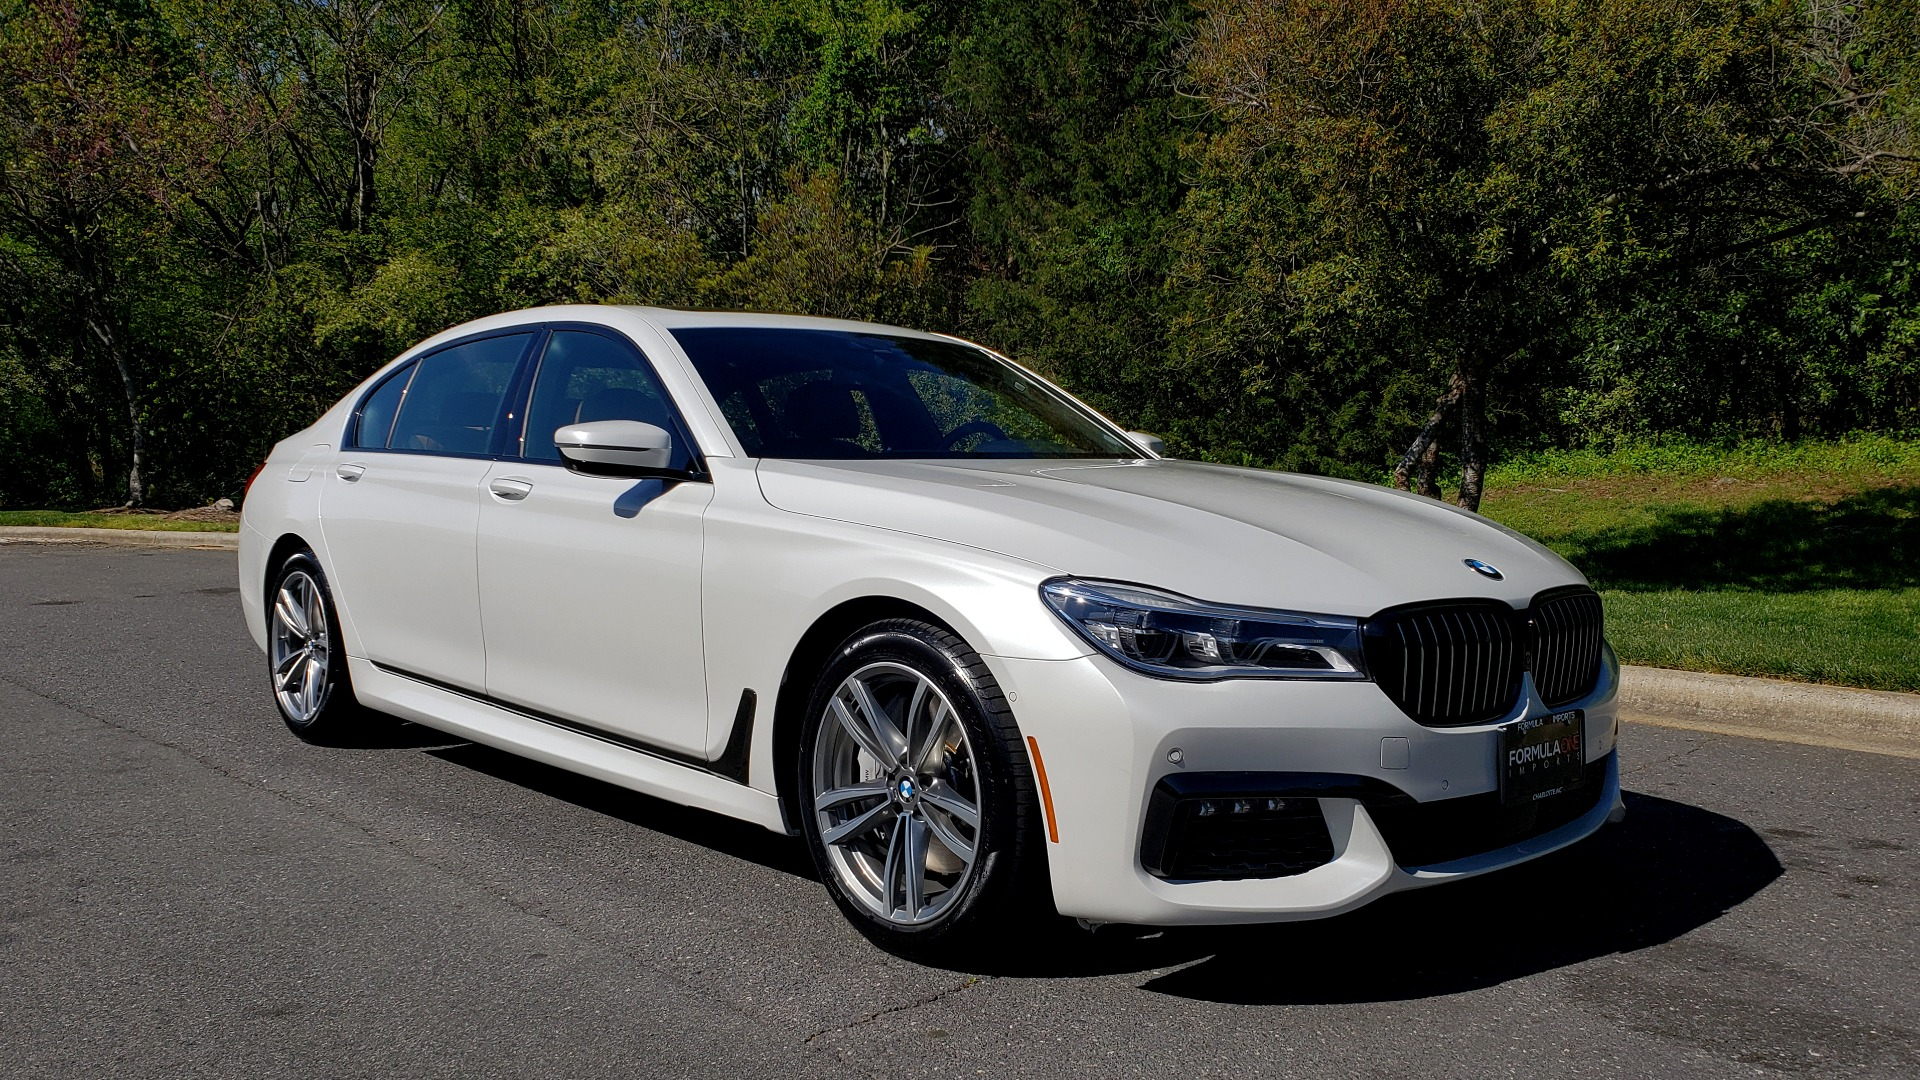 Used 2017 BMW 7 SERIES 750I XDRIVE / M-SPORT / EXEC PKG / DRVR ASST PLUS II / CLD WTHR for sale Sold at Formula Imports in Charlotte NC 28227 5